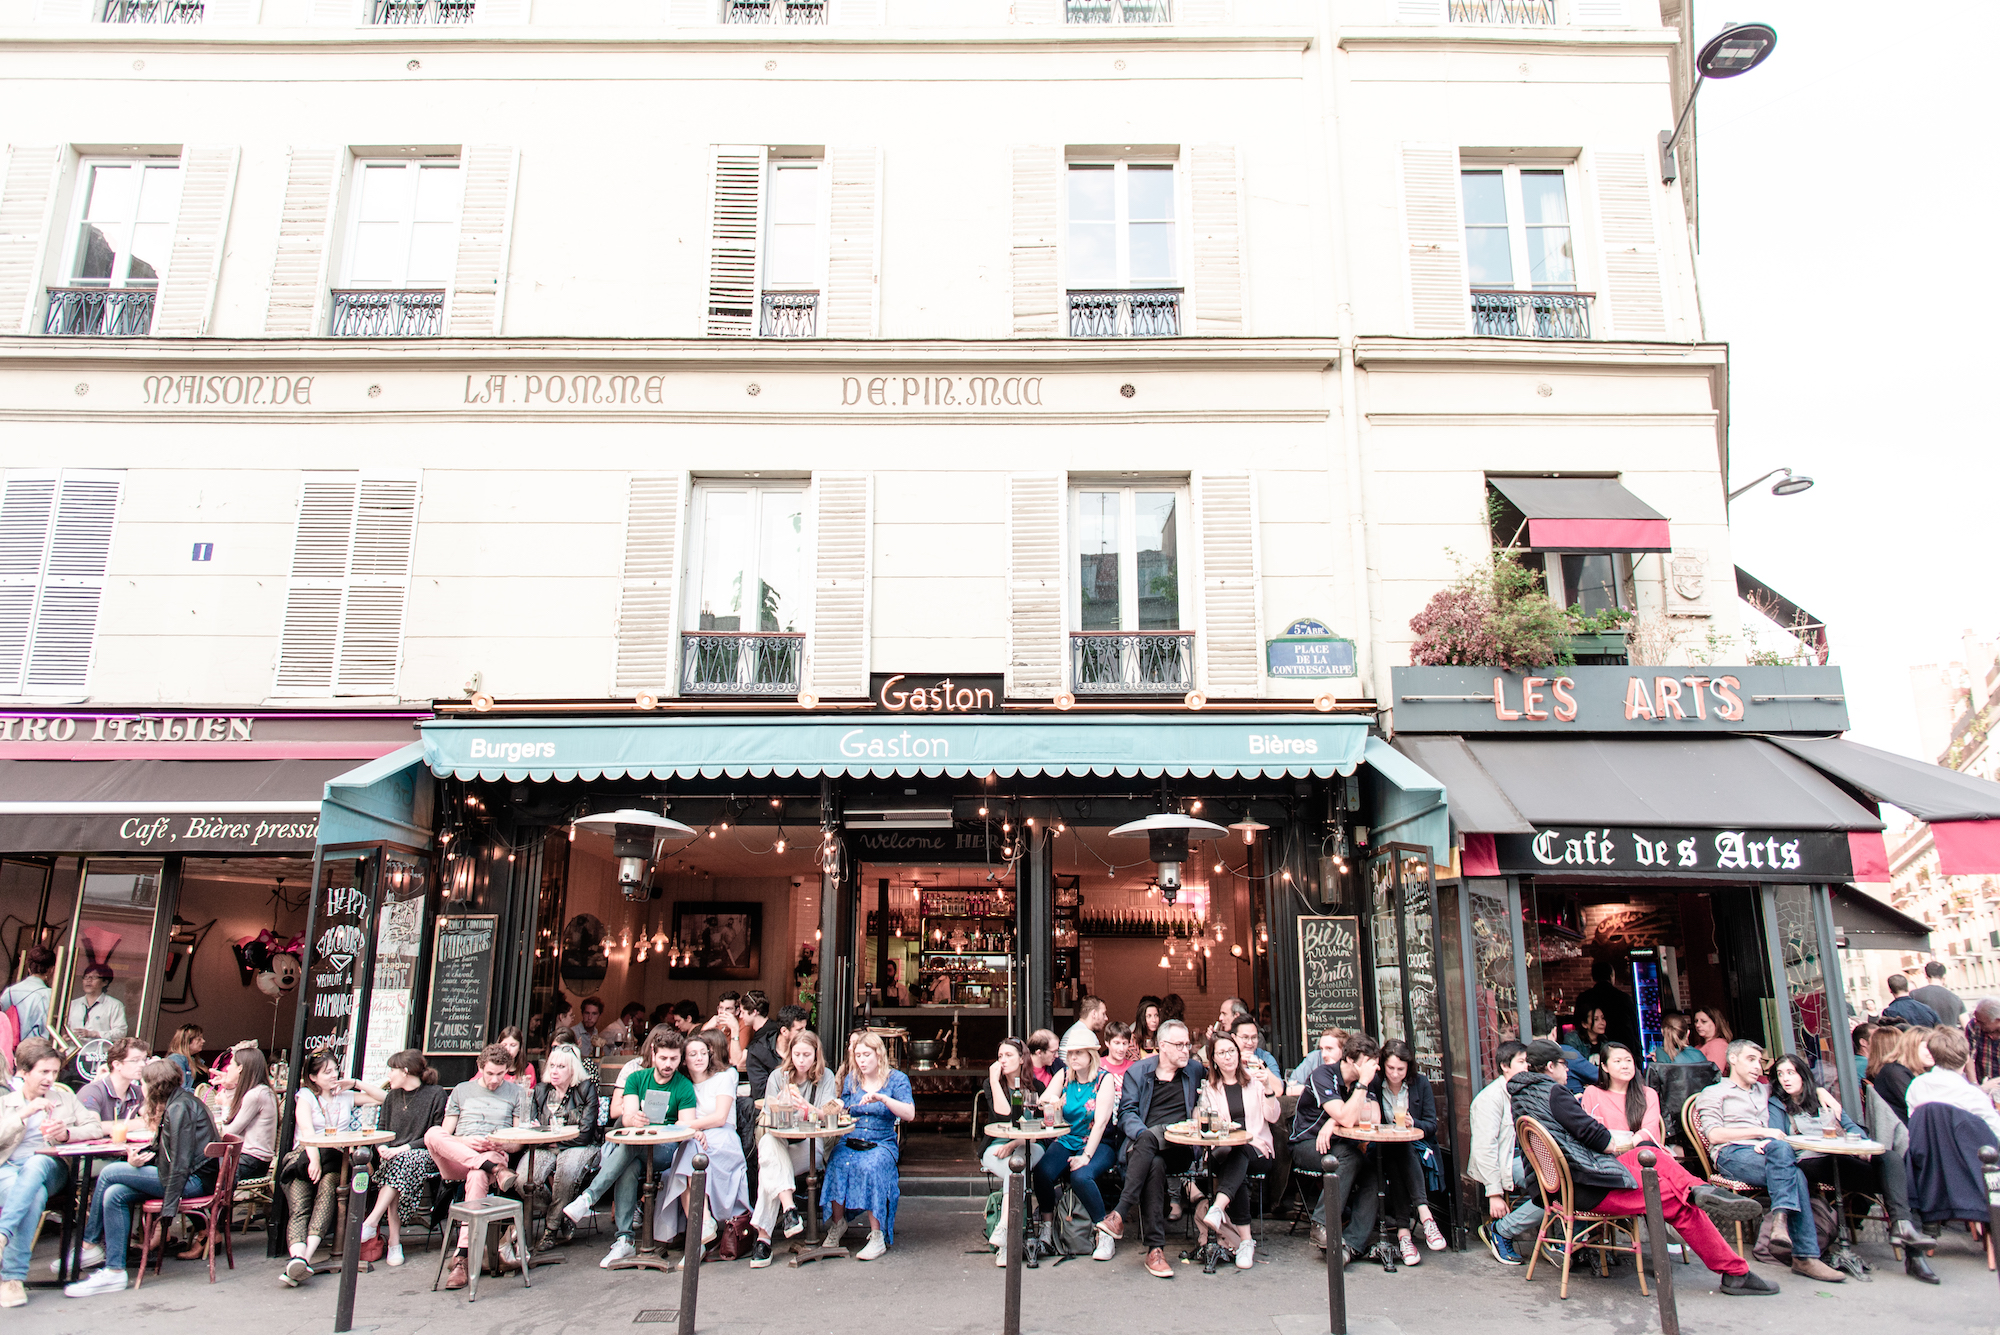 Diners spill out onto the terrace of Gaston, a brasserie in the Latin Quarter, on a warm day, enjoying the apéritif.